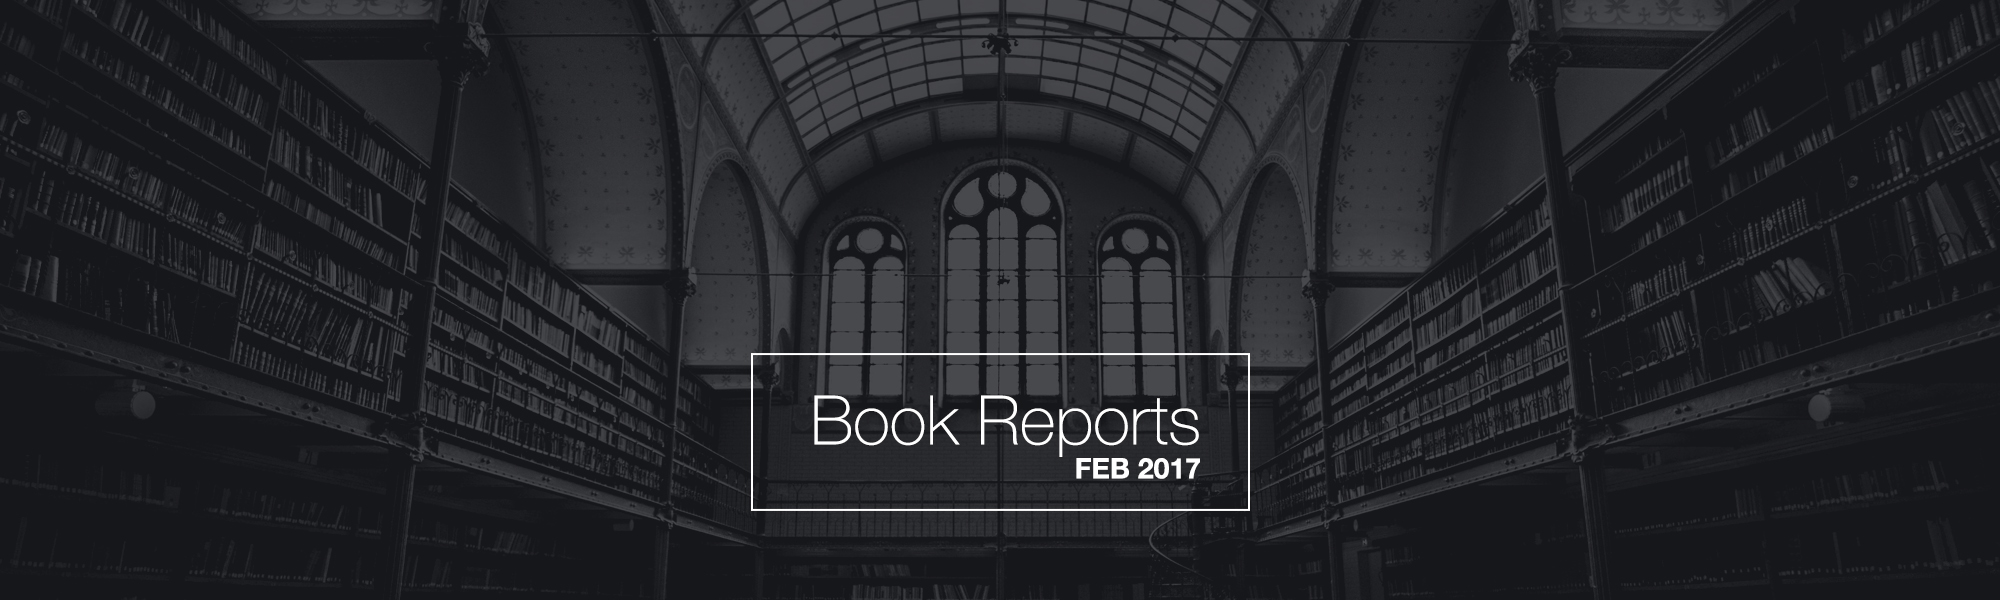 Book Reports – Touching our shelves